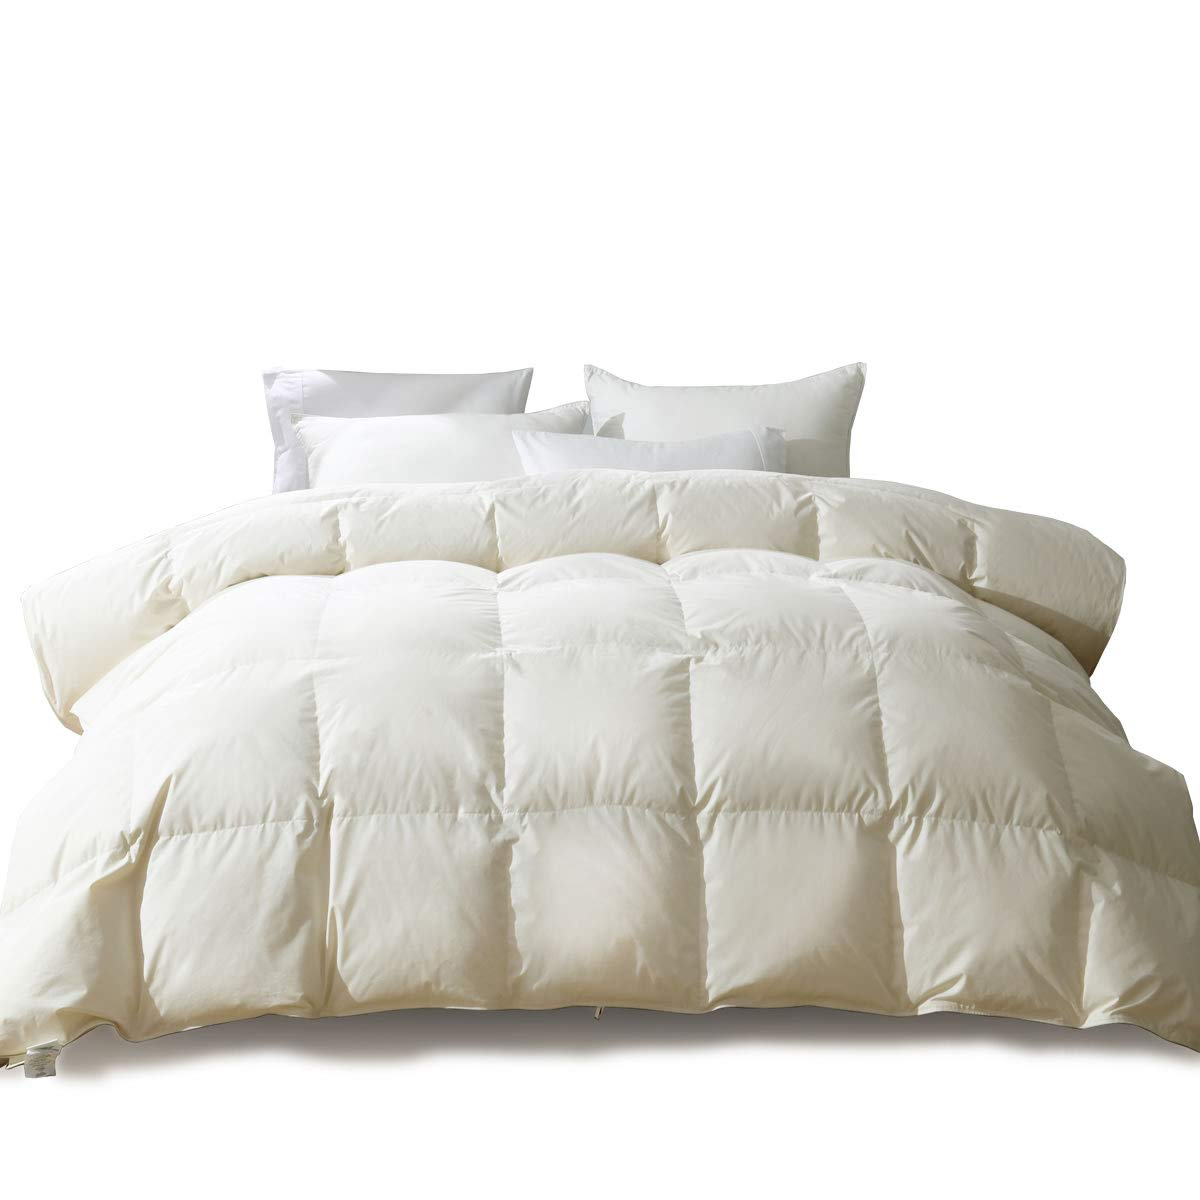 APSMILE Luxury 100% Organic Cotton All Season Goose Down Comforter King Size Hypoallergenic Medium Warmth Duvet Insert, Beige White